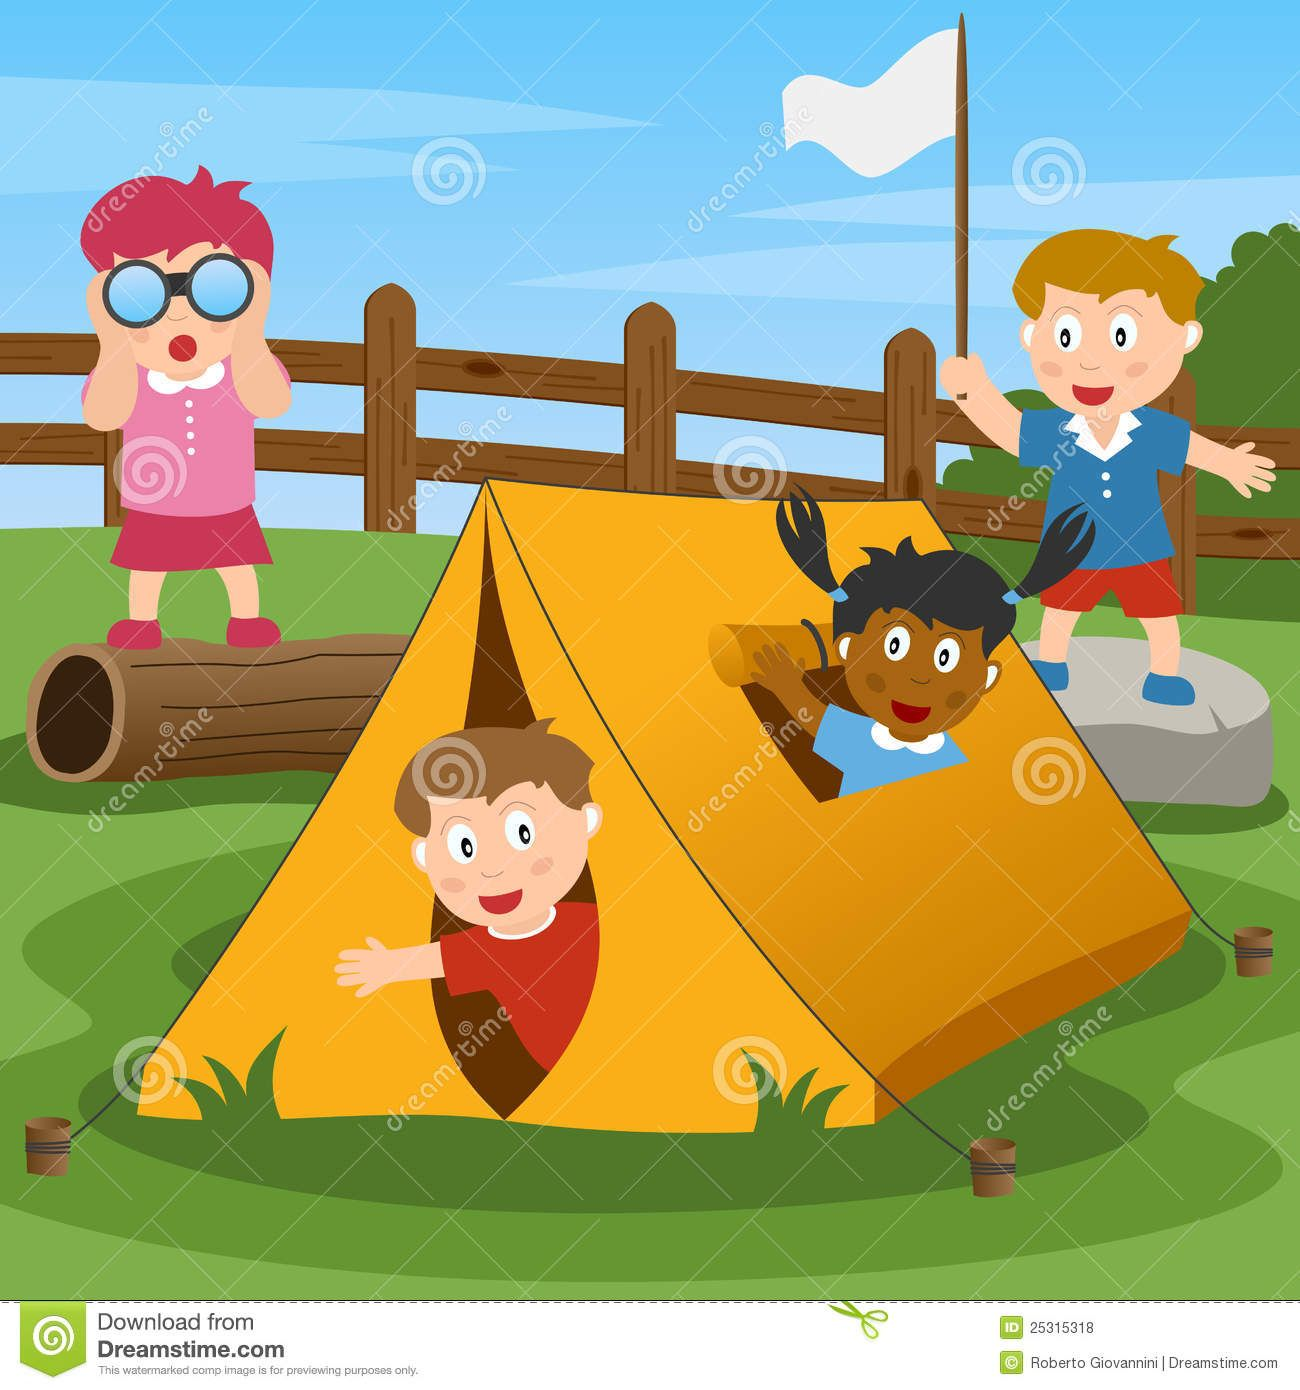 Camping Clipart Child Camp 2 Camping Clipart Camping With Kids